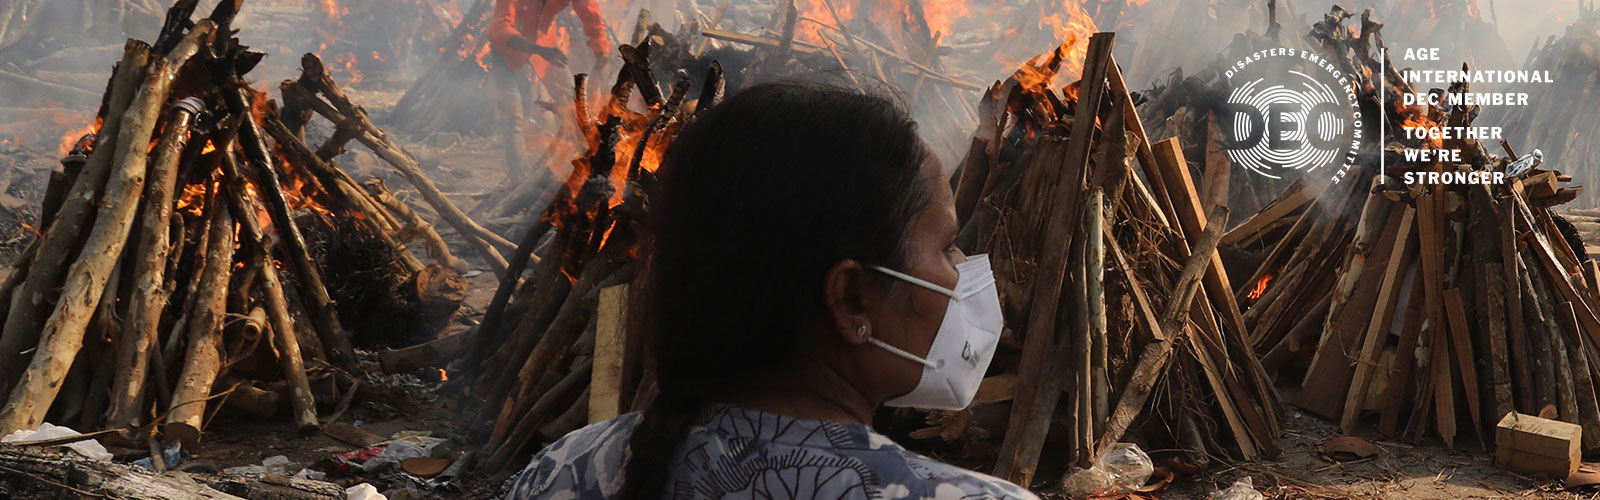 A woman looks at the burning bodies of those who have died from coronavirus in India